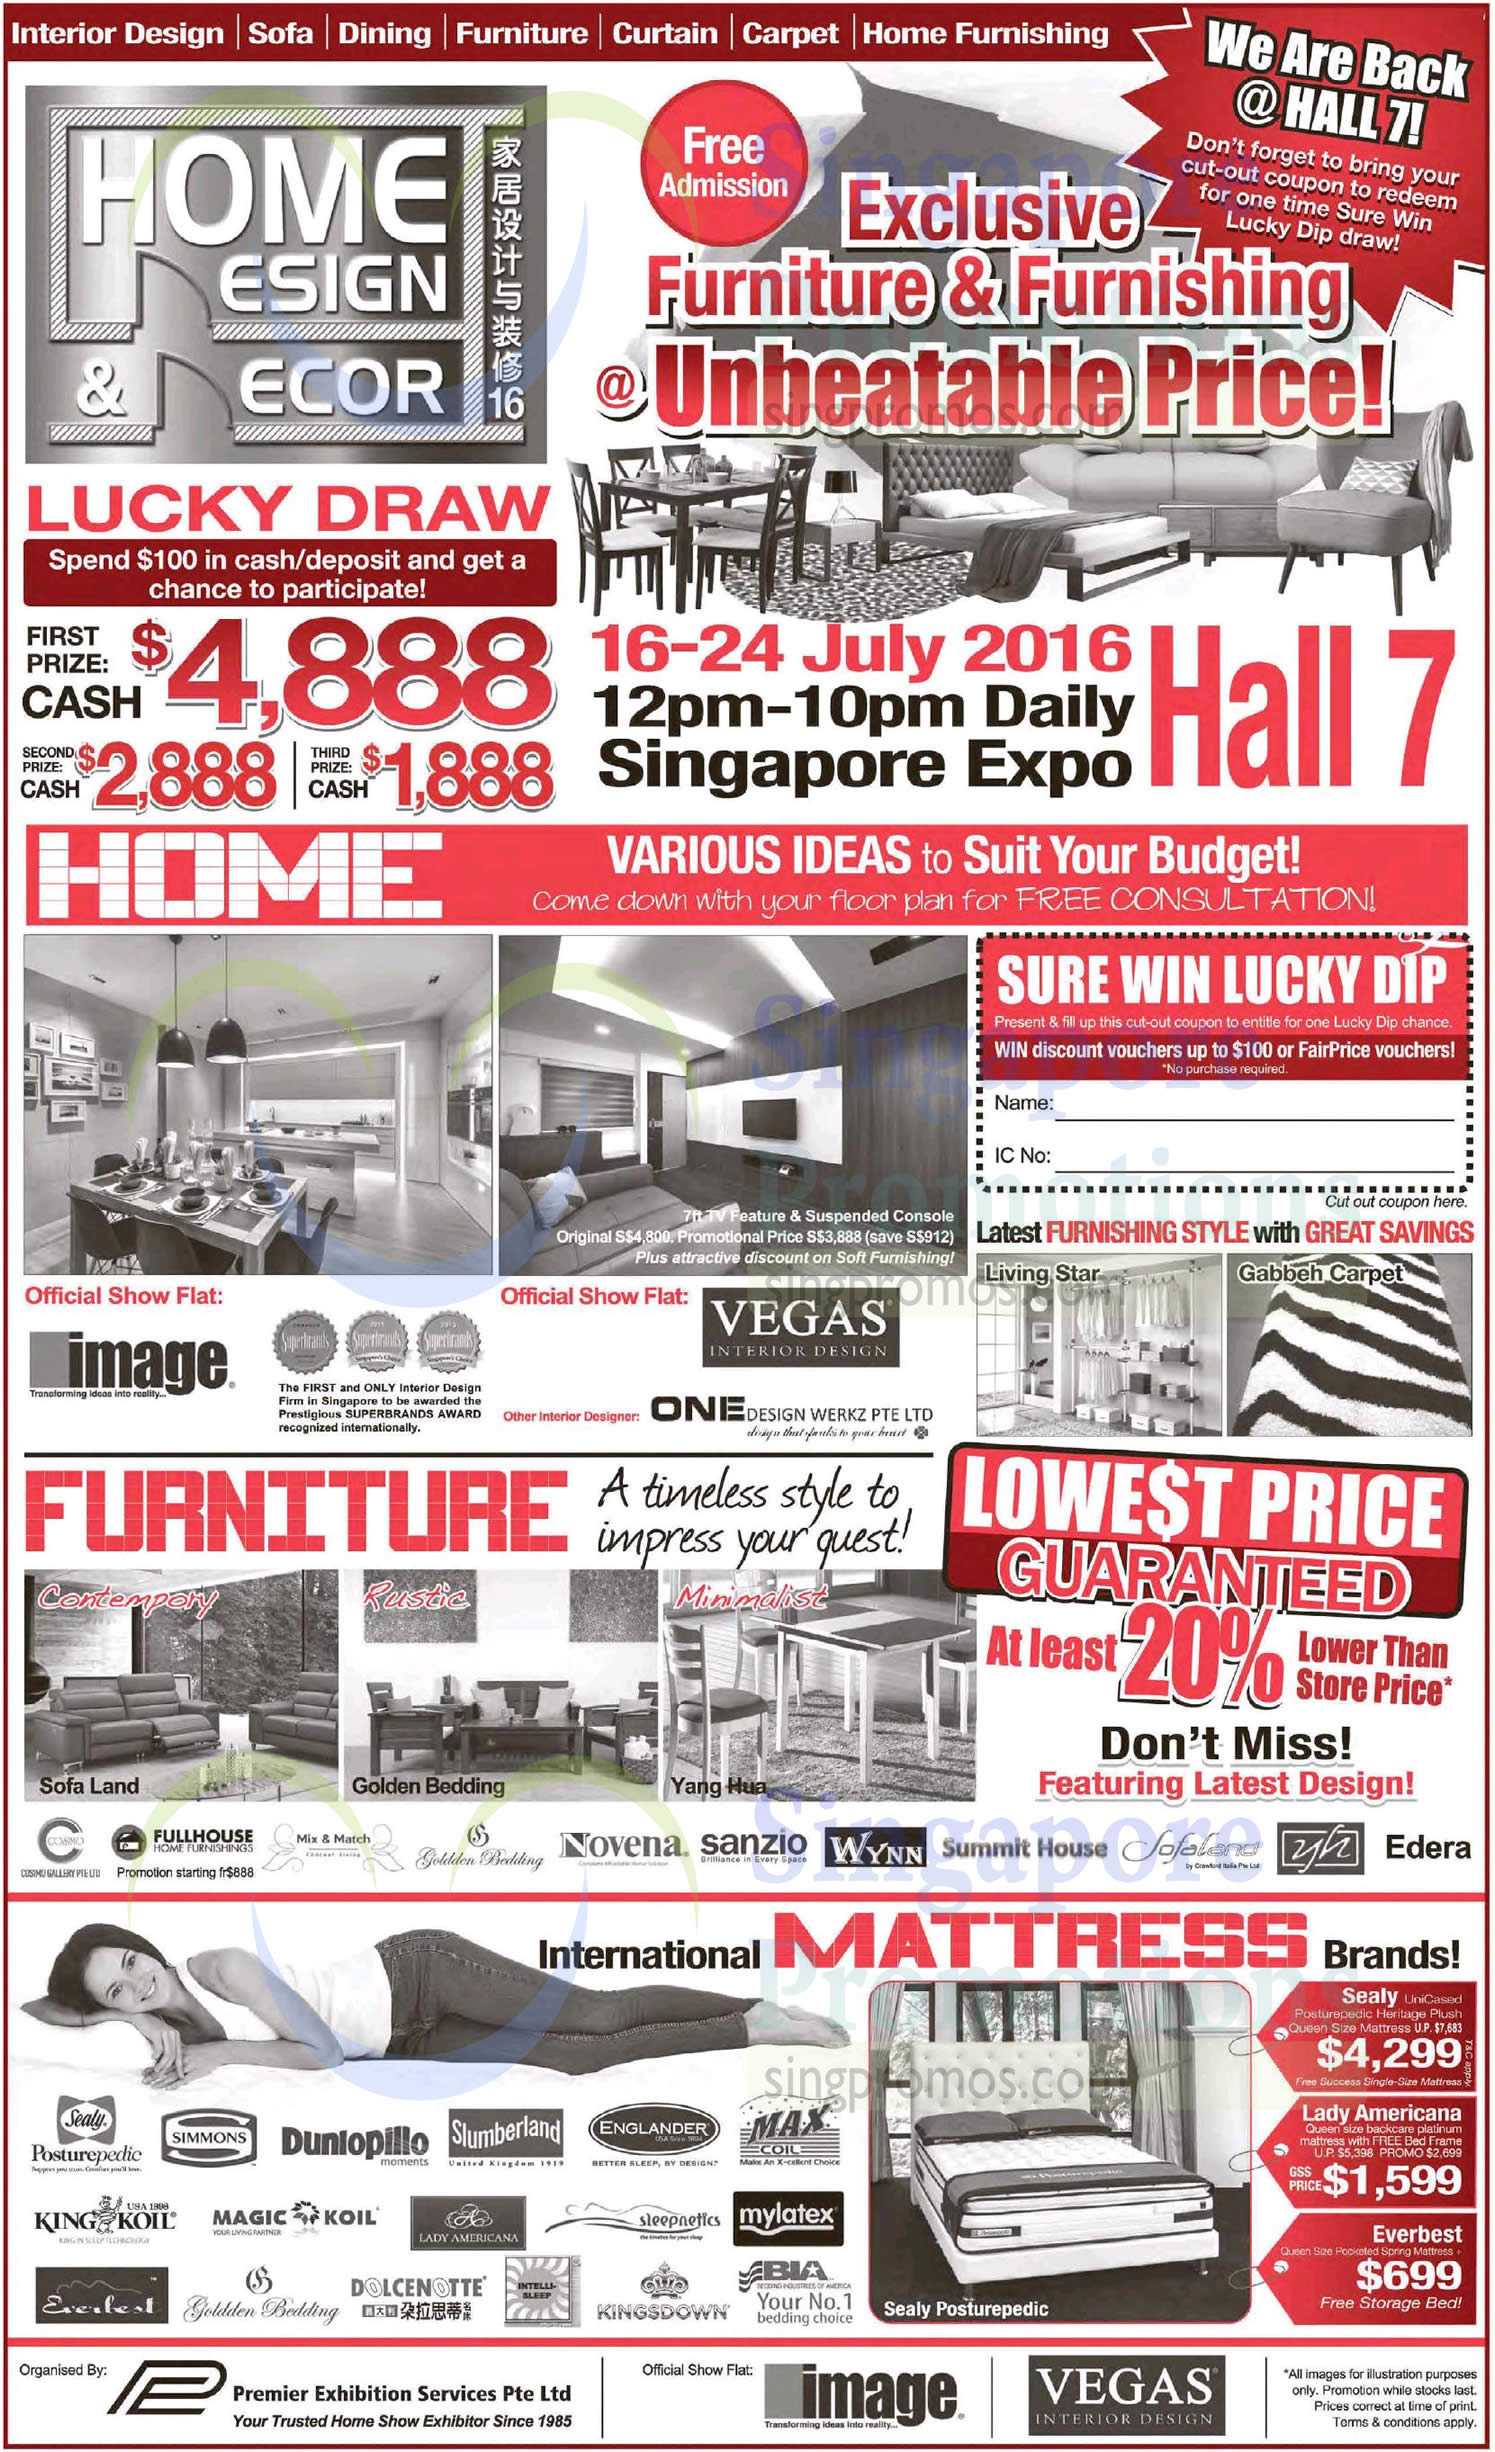 Home Design Amp Deco 2016 At Expo From 16 24 Jul 2016